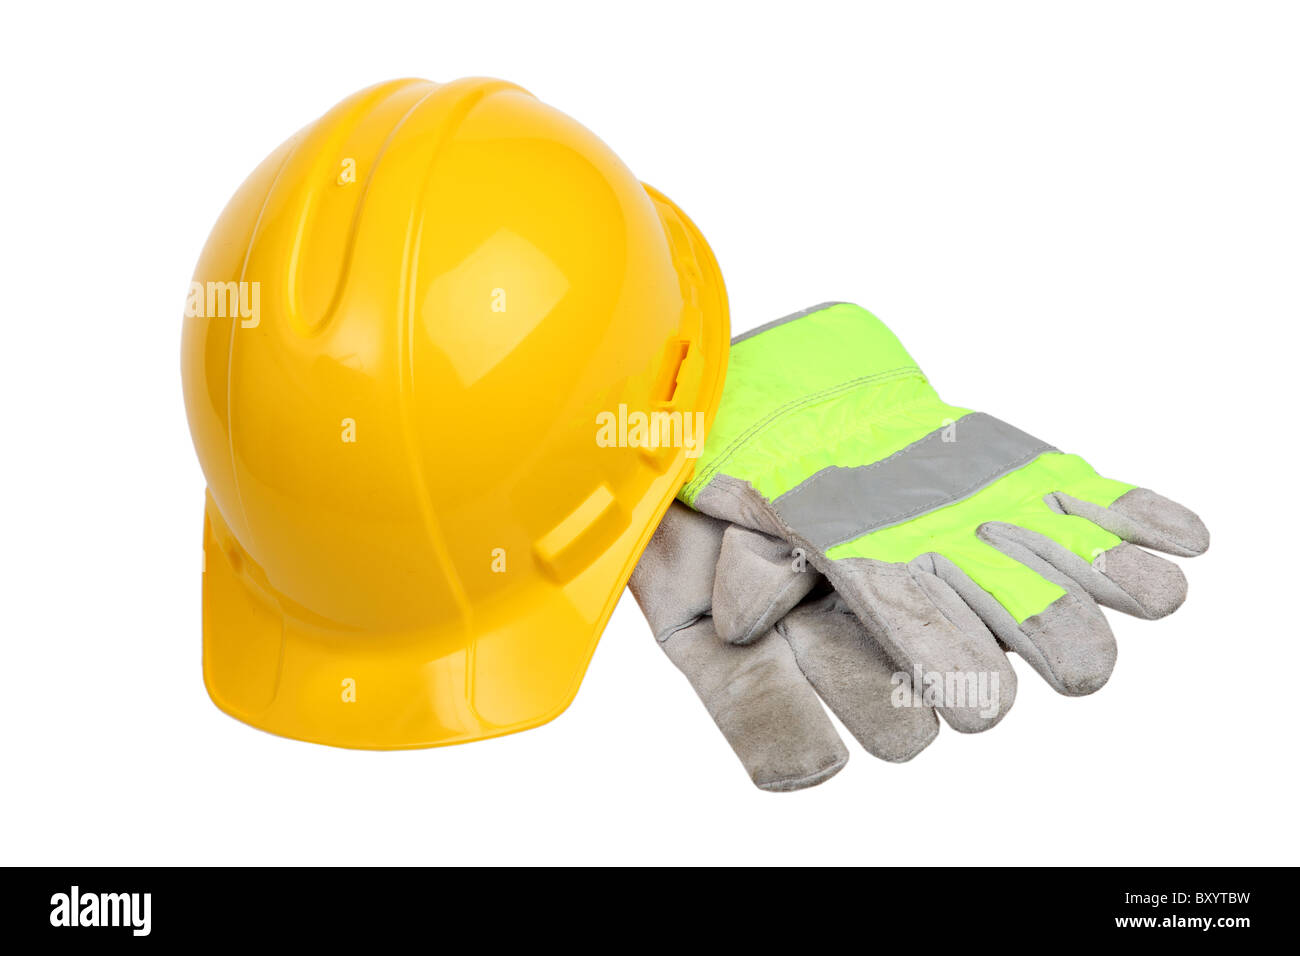 Construction Hard Hat and work gloves on white background - Stock Image